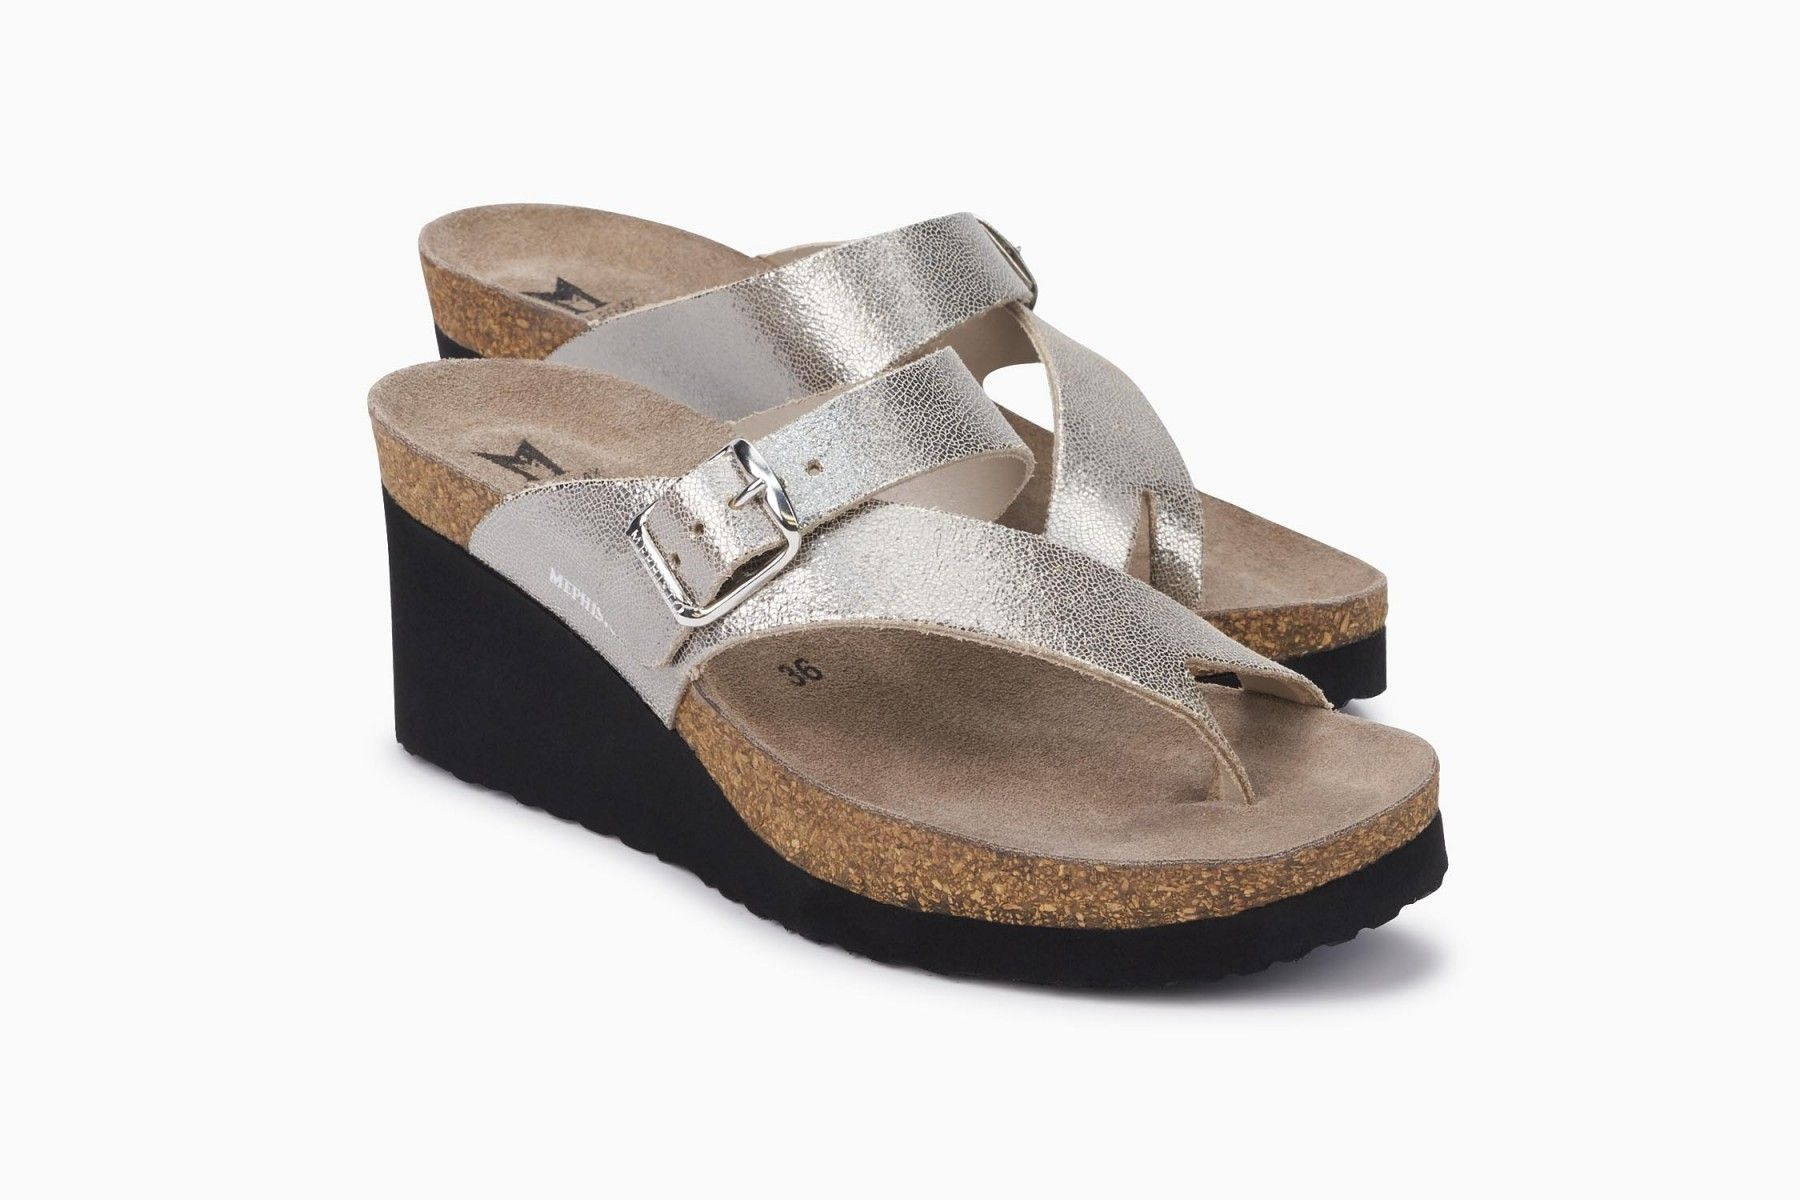 Tyfanie Sandal Mephisto Women S Cork Footbed Sandals Metallic Leather Platinum In 2020 Footbed Sandals Cork Footbed Sandals Modern Sandals